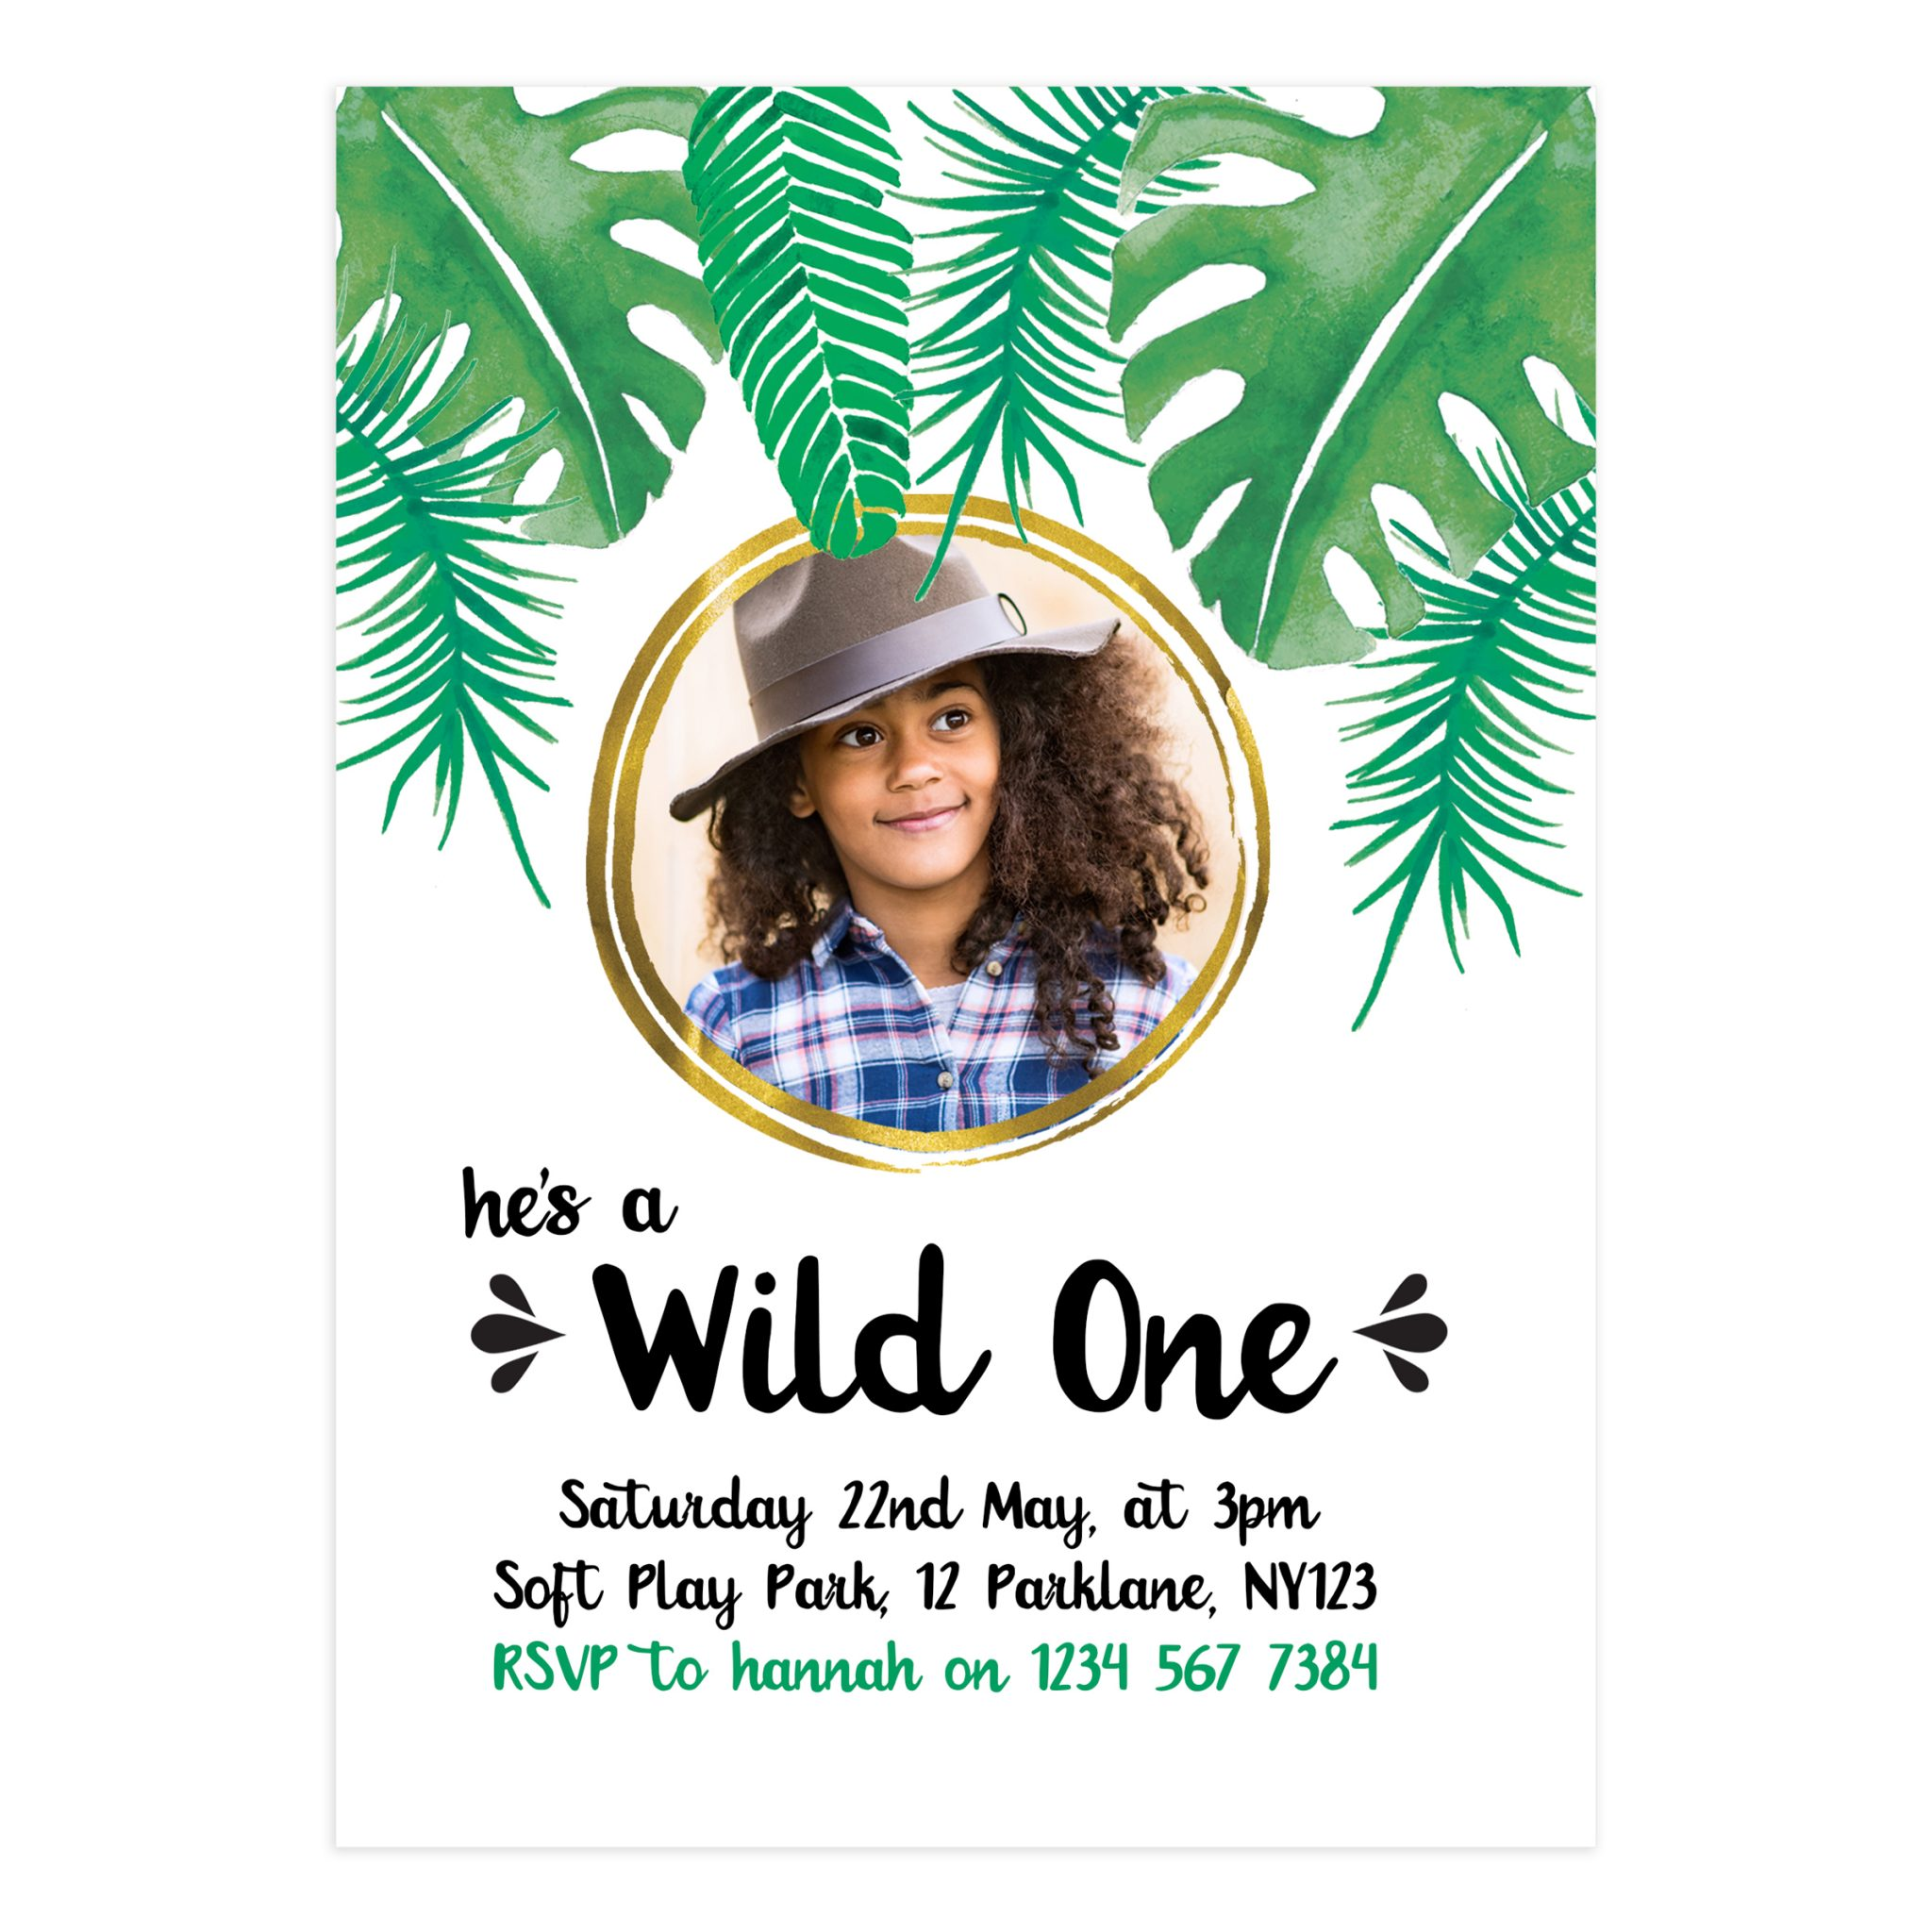 Printable Wild One Party Invitation Card - Mockaroon